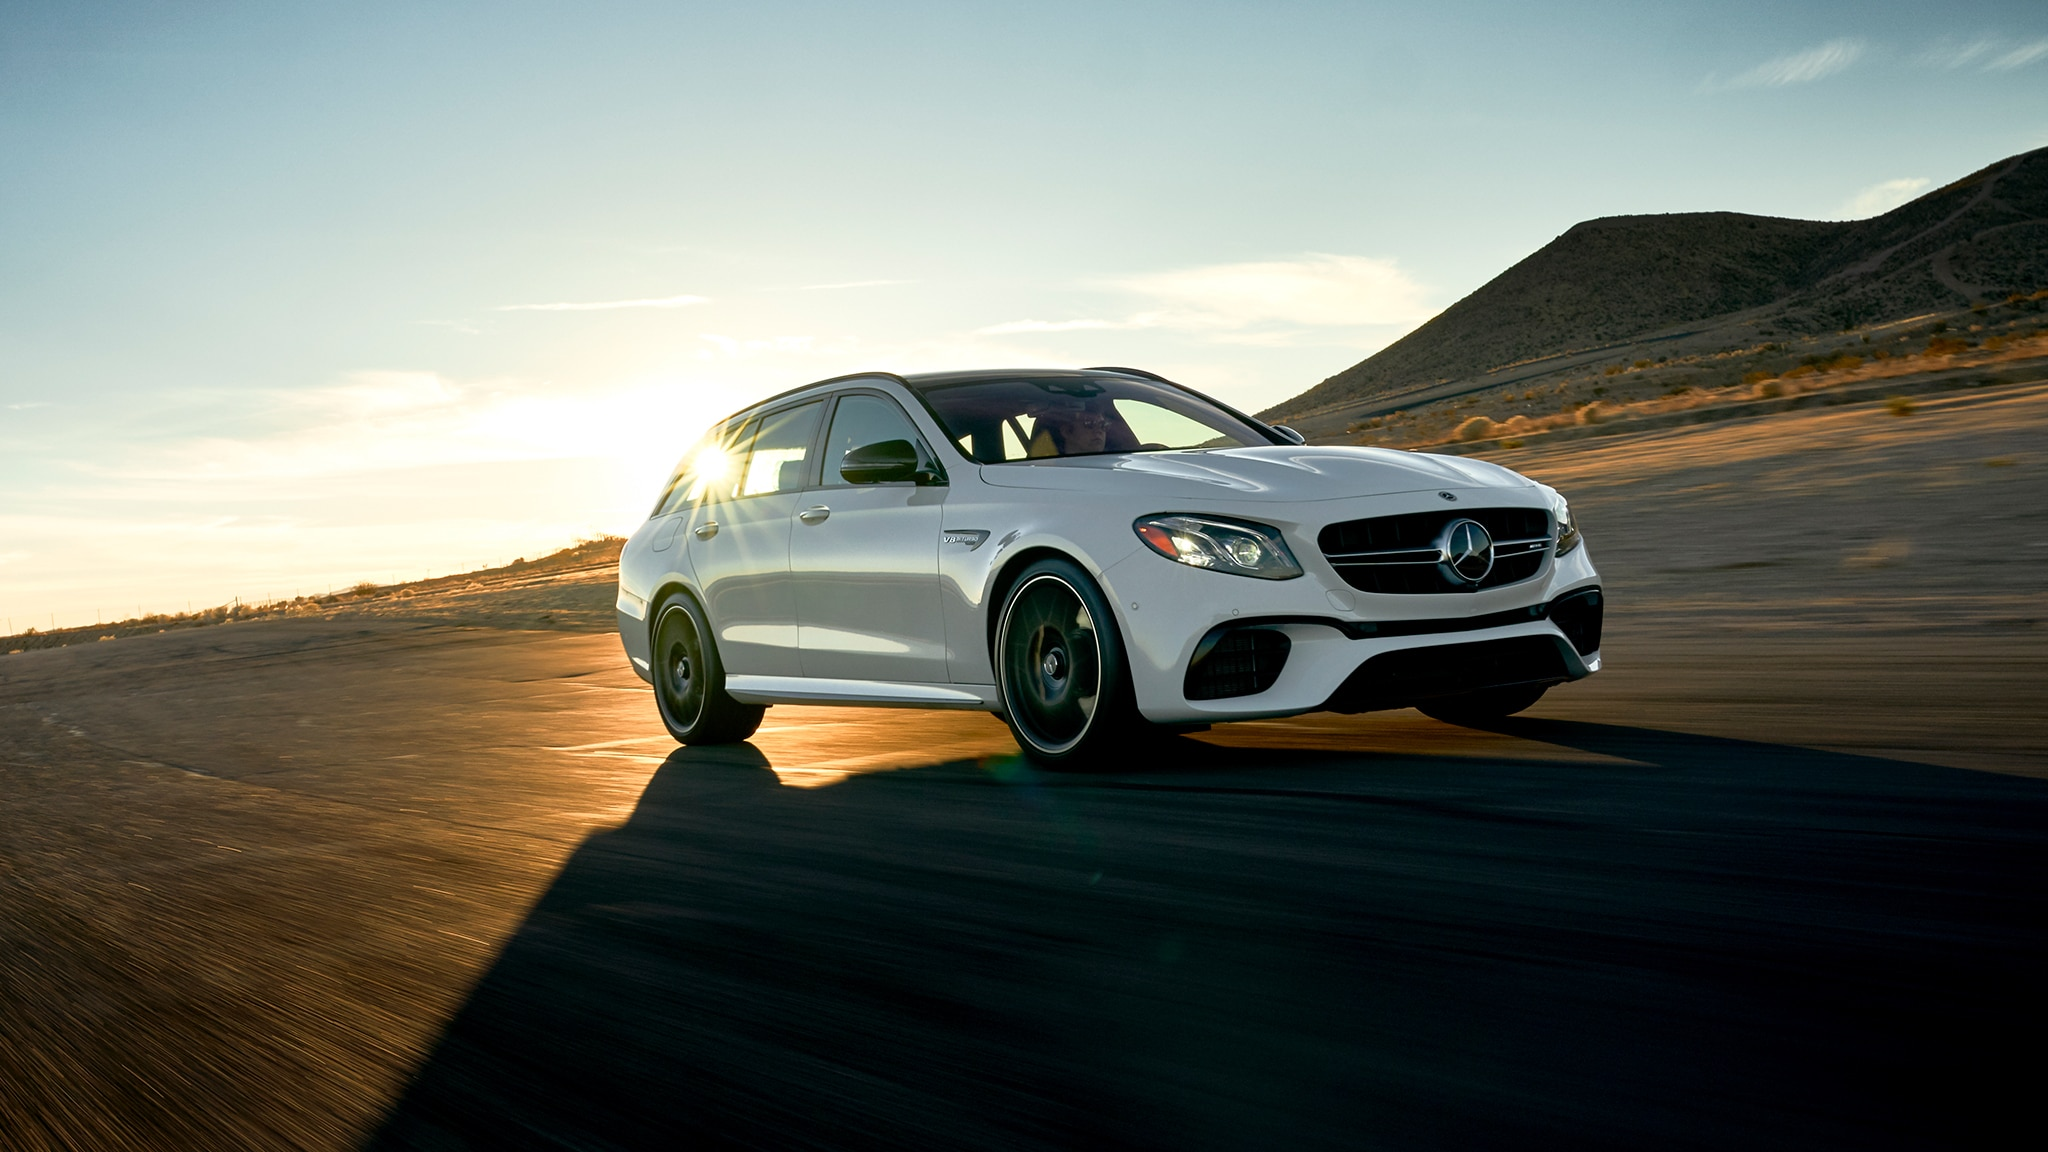 2019 Mercedes-AMG E63 S Wagon: Don't Underestimate the ...